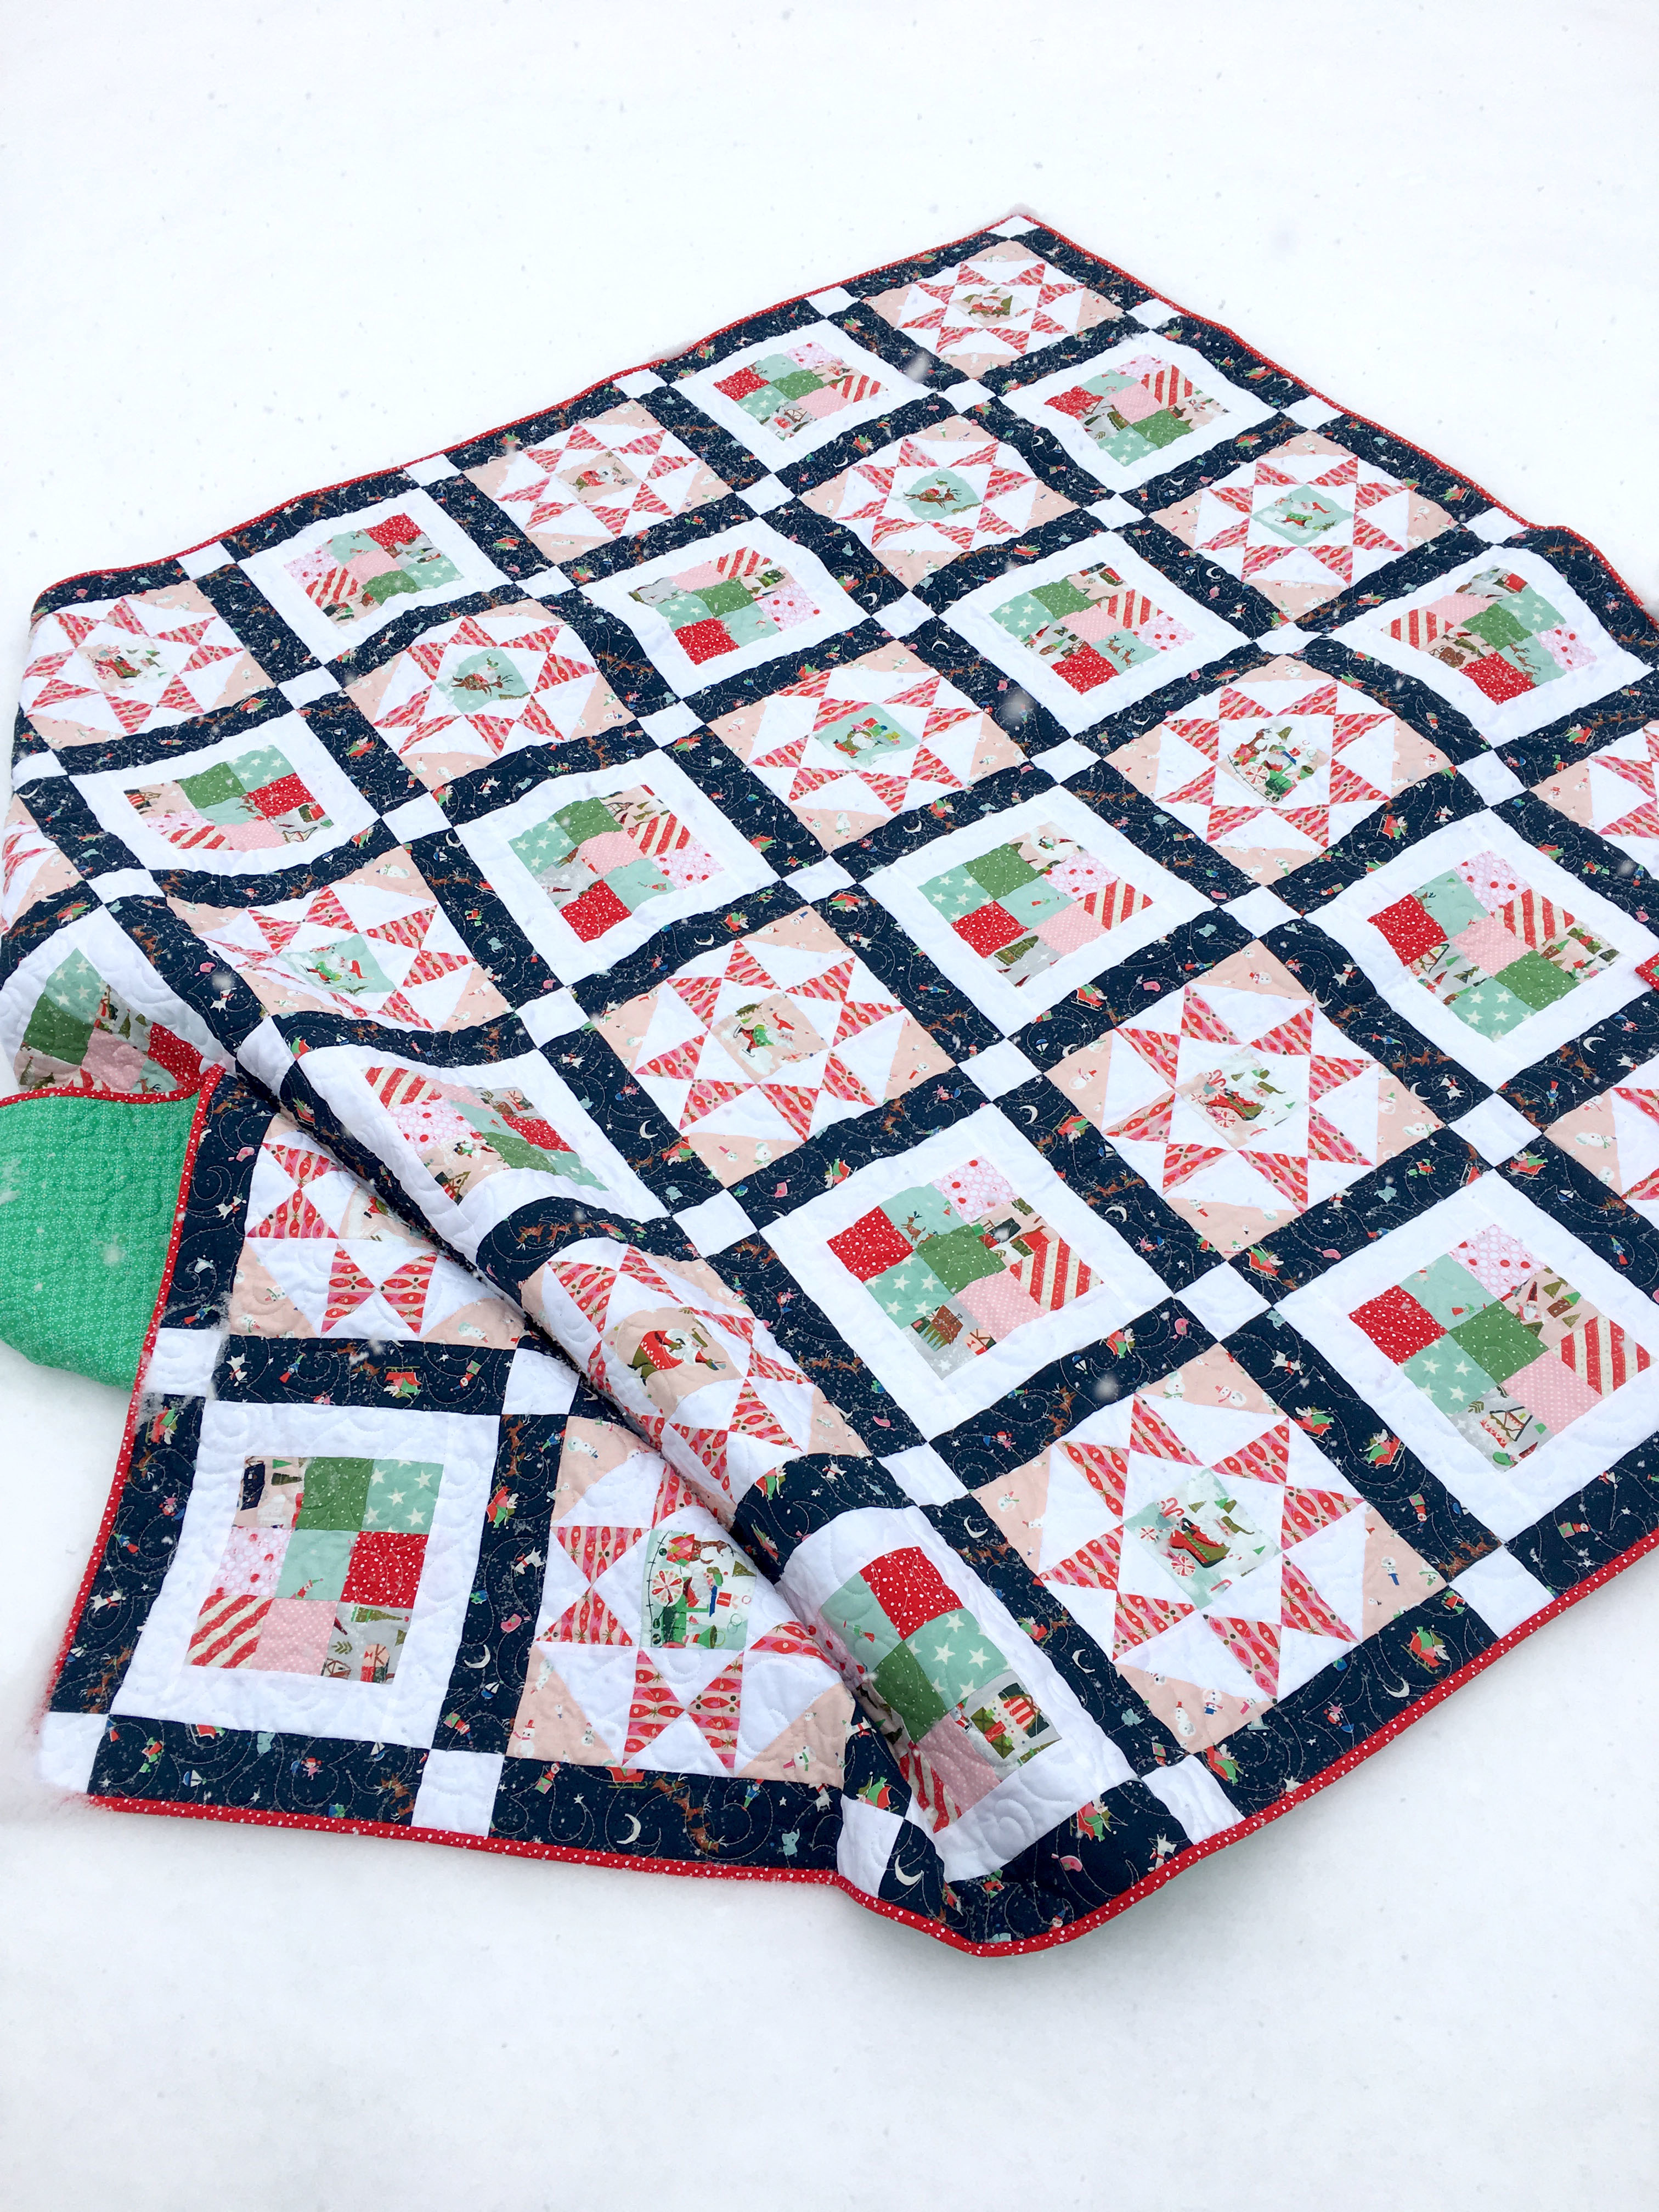 Free Christmas Quilt Block Patterns.Glad Tidings Free Quilt Pattern Pdf Download